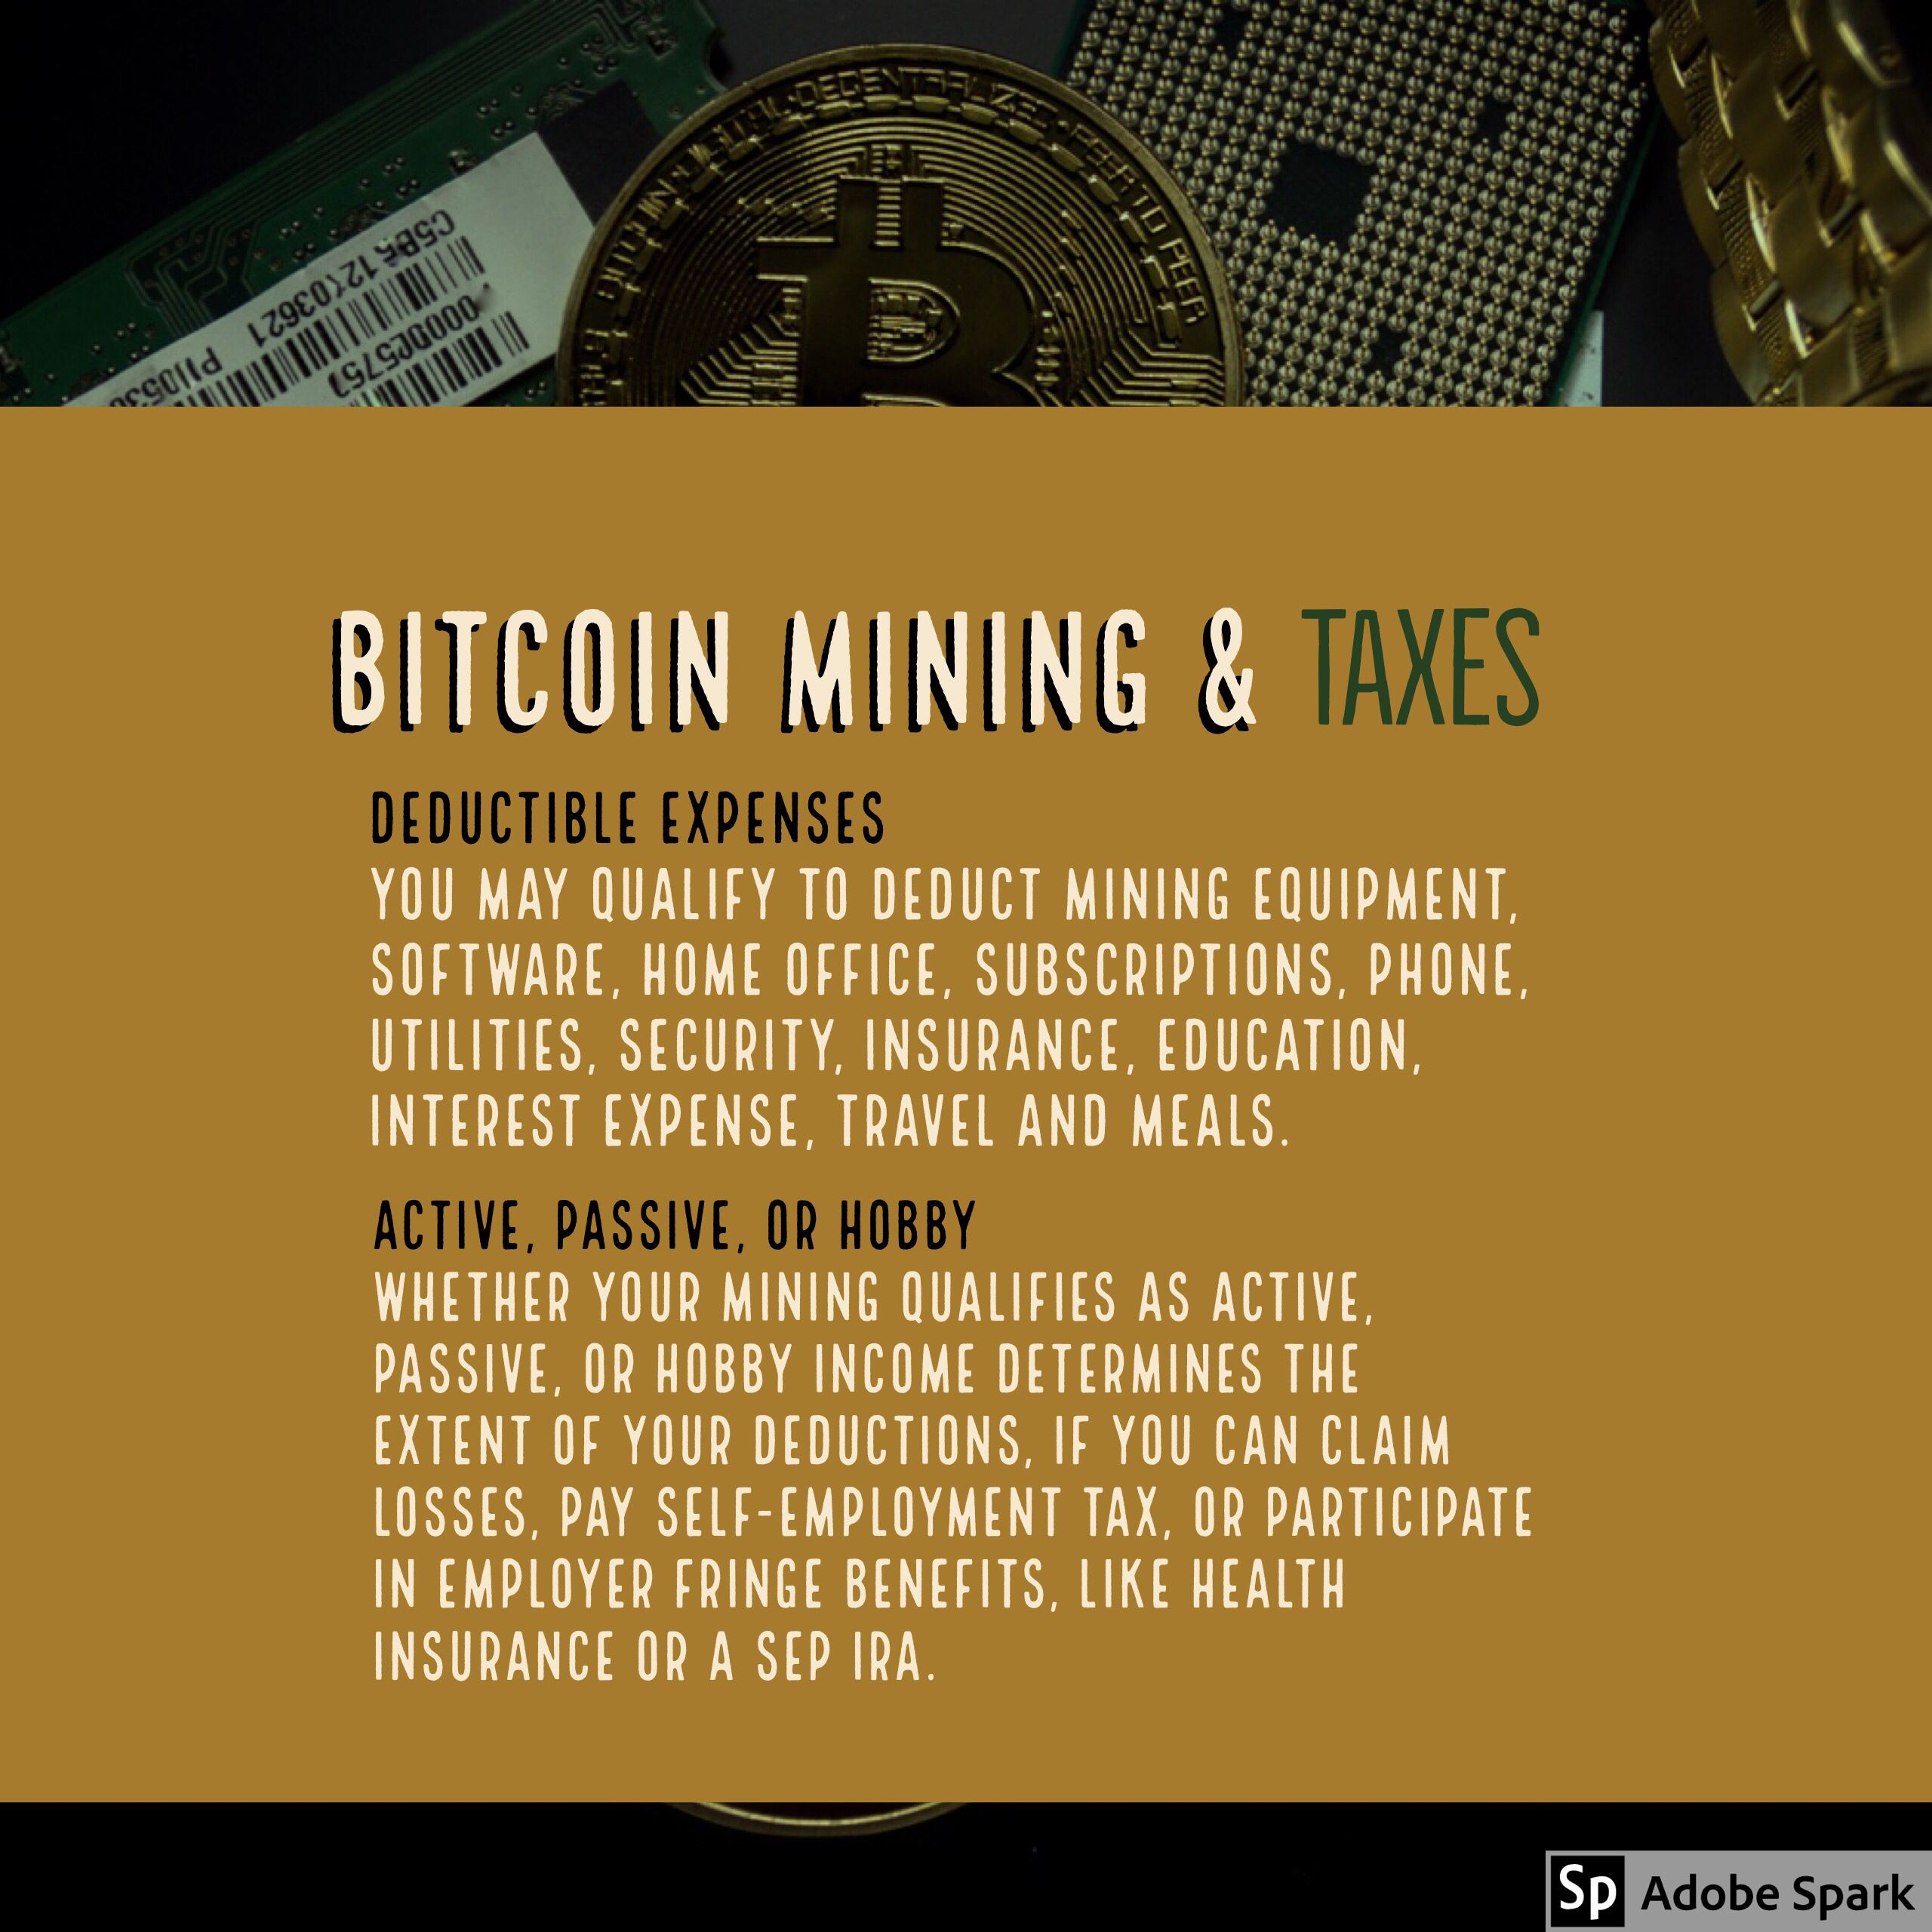 do you have to pay taxes for mining cryptocurrency